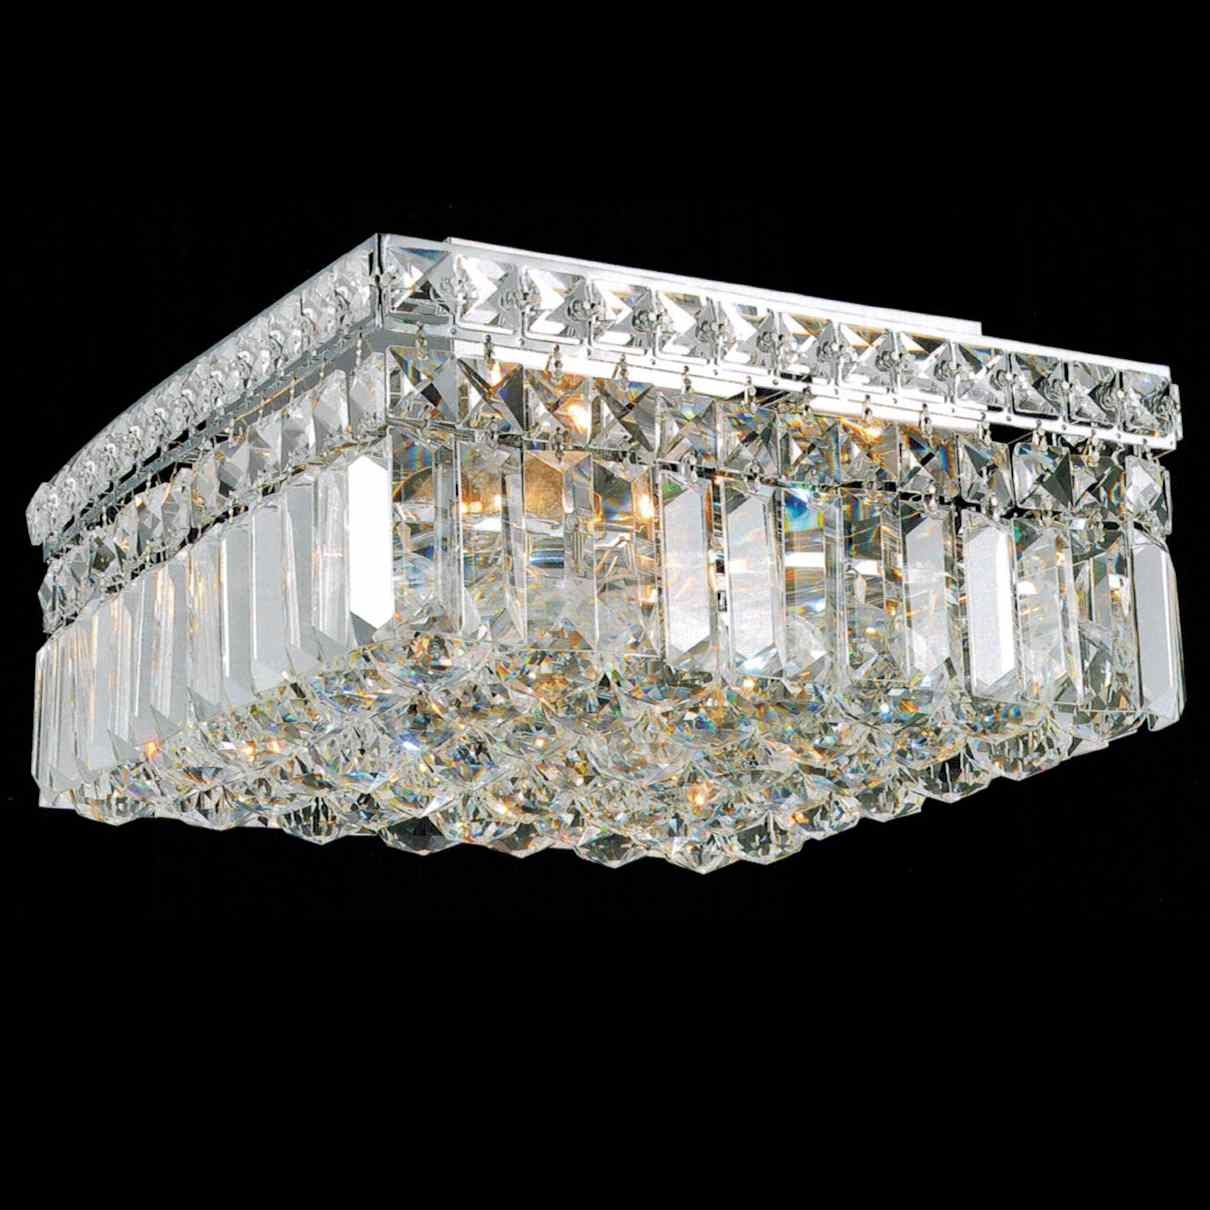 Flush Mount Crystal Chandelier Lighting Intended For 4light Chrome Crystal Chandeliers (View 15 of 25)